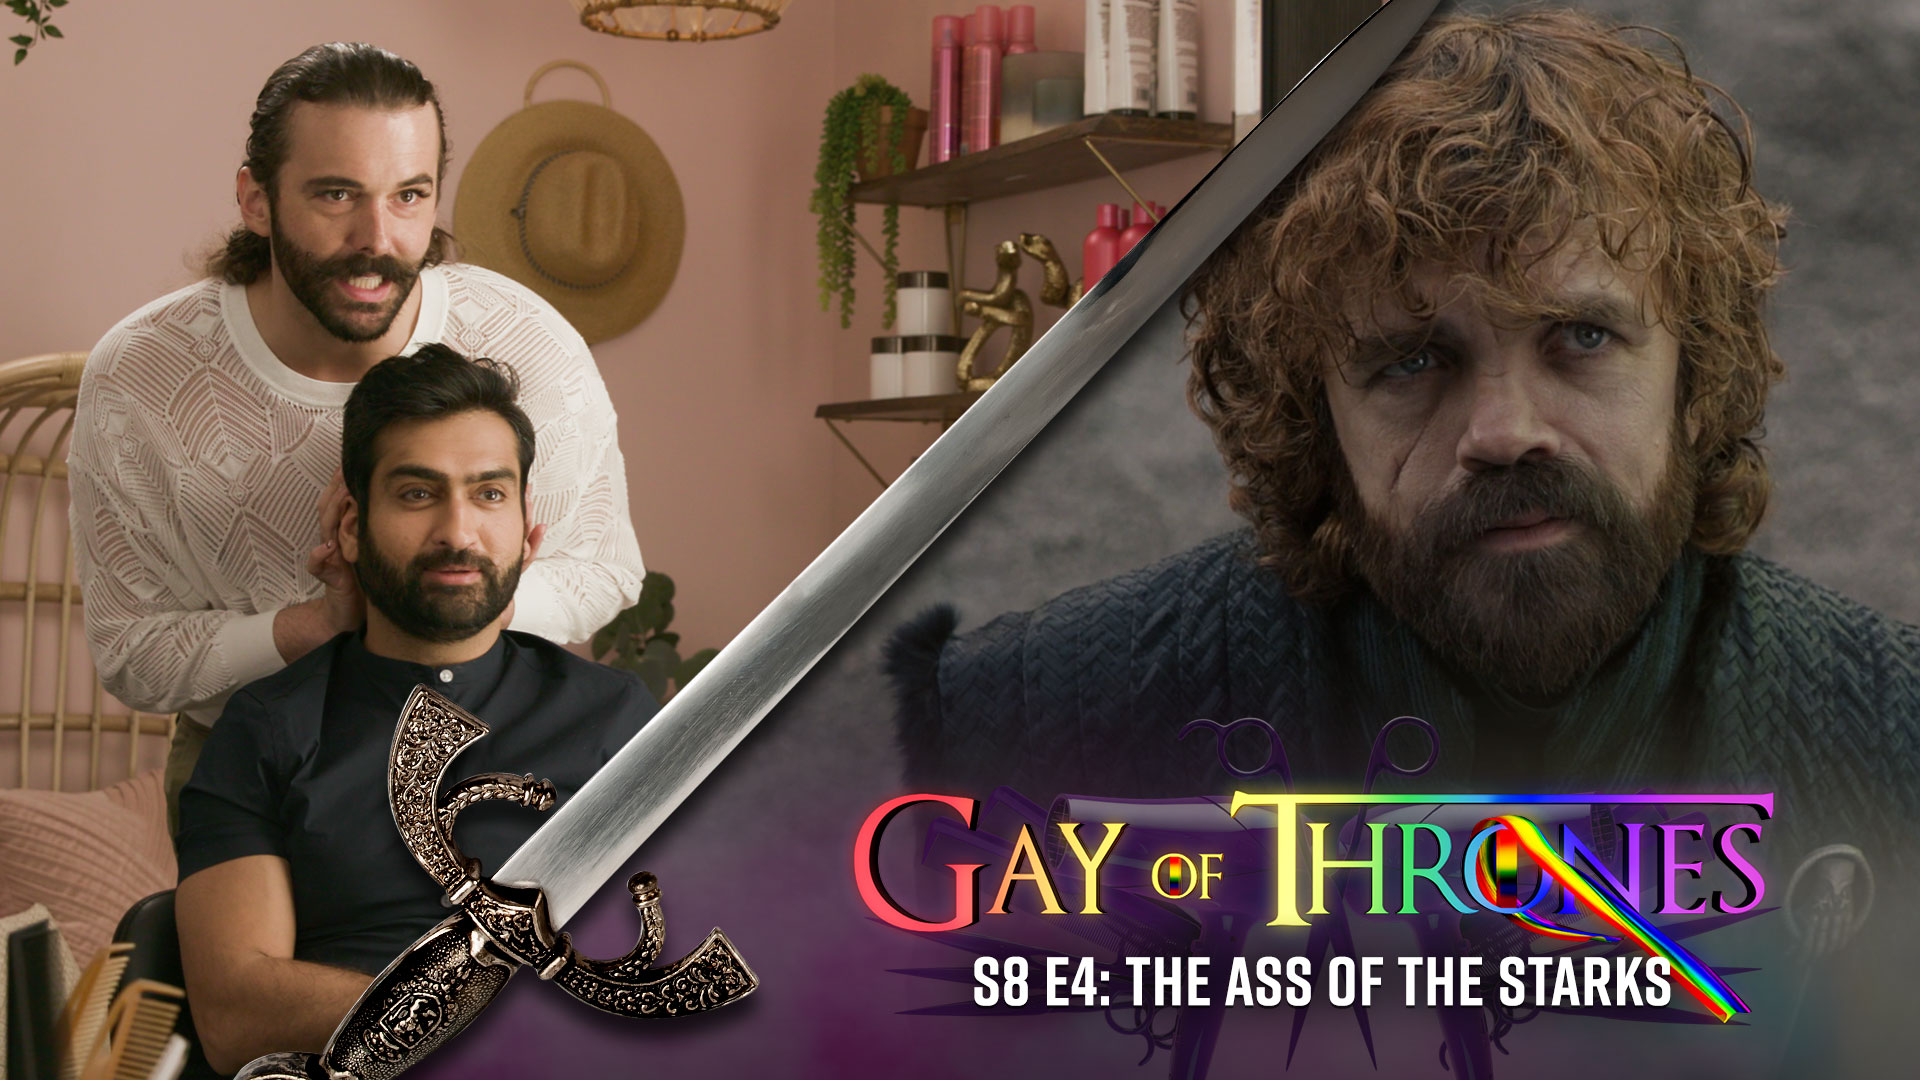 What Is Gay Of Thrones